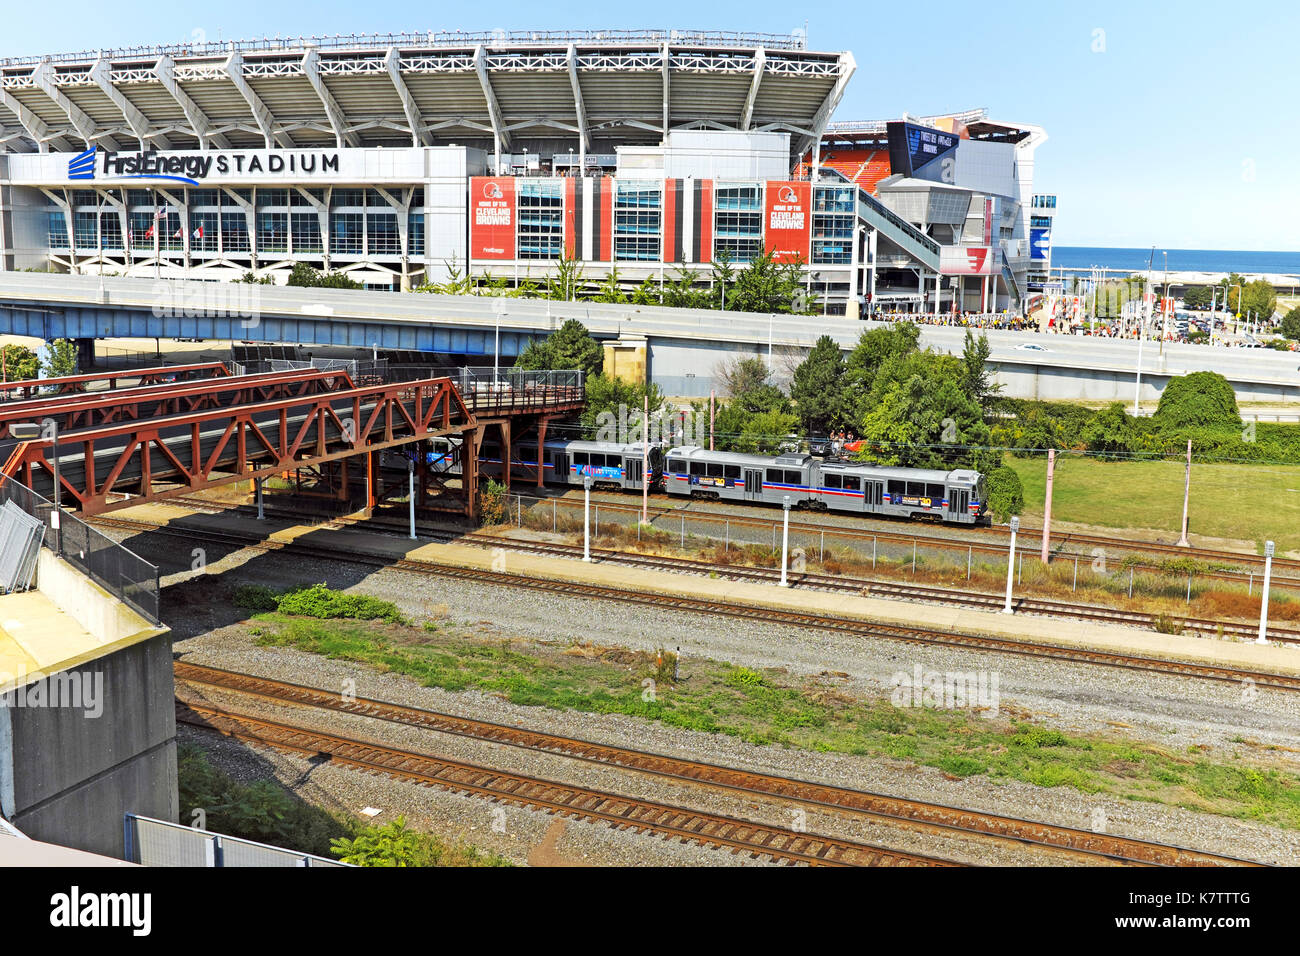 FirstEnergy Stadium in Cleveland, Ohio is home to the professional football team, the Cleveland Browns. - Stock Image